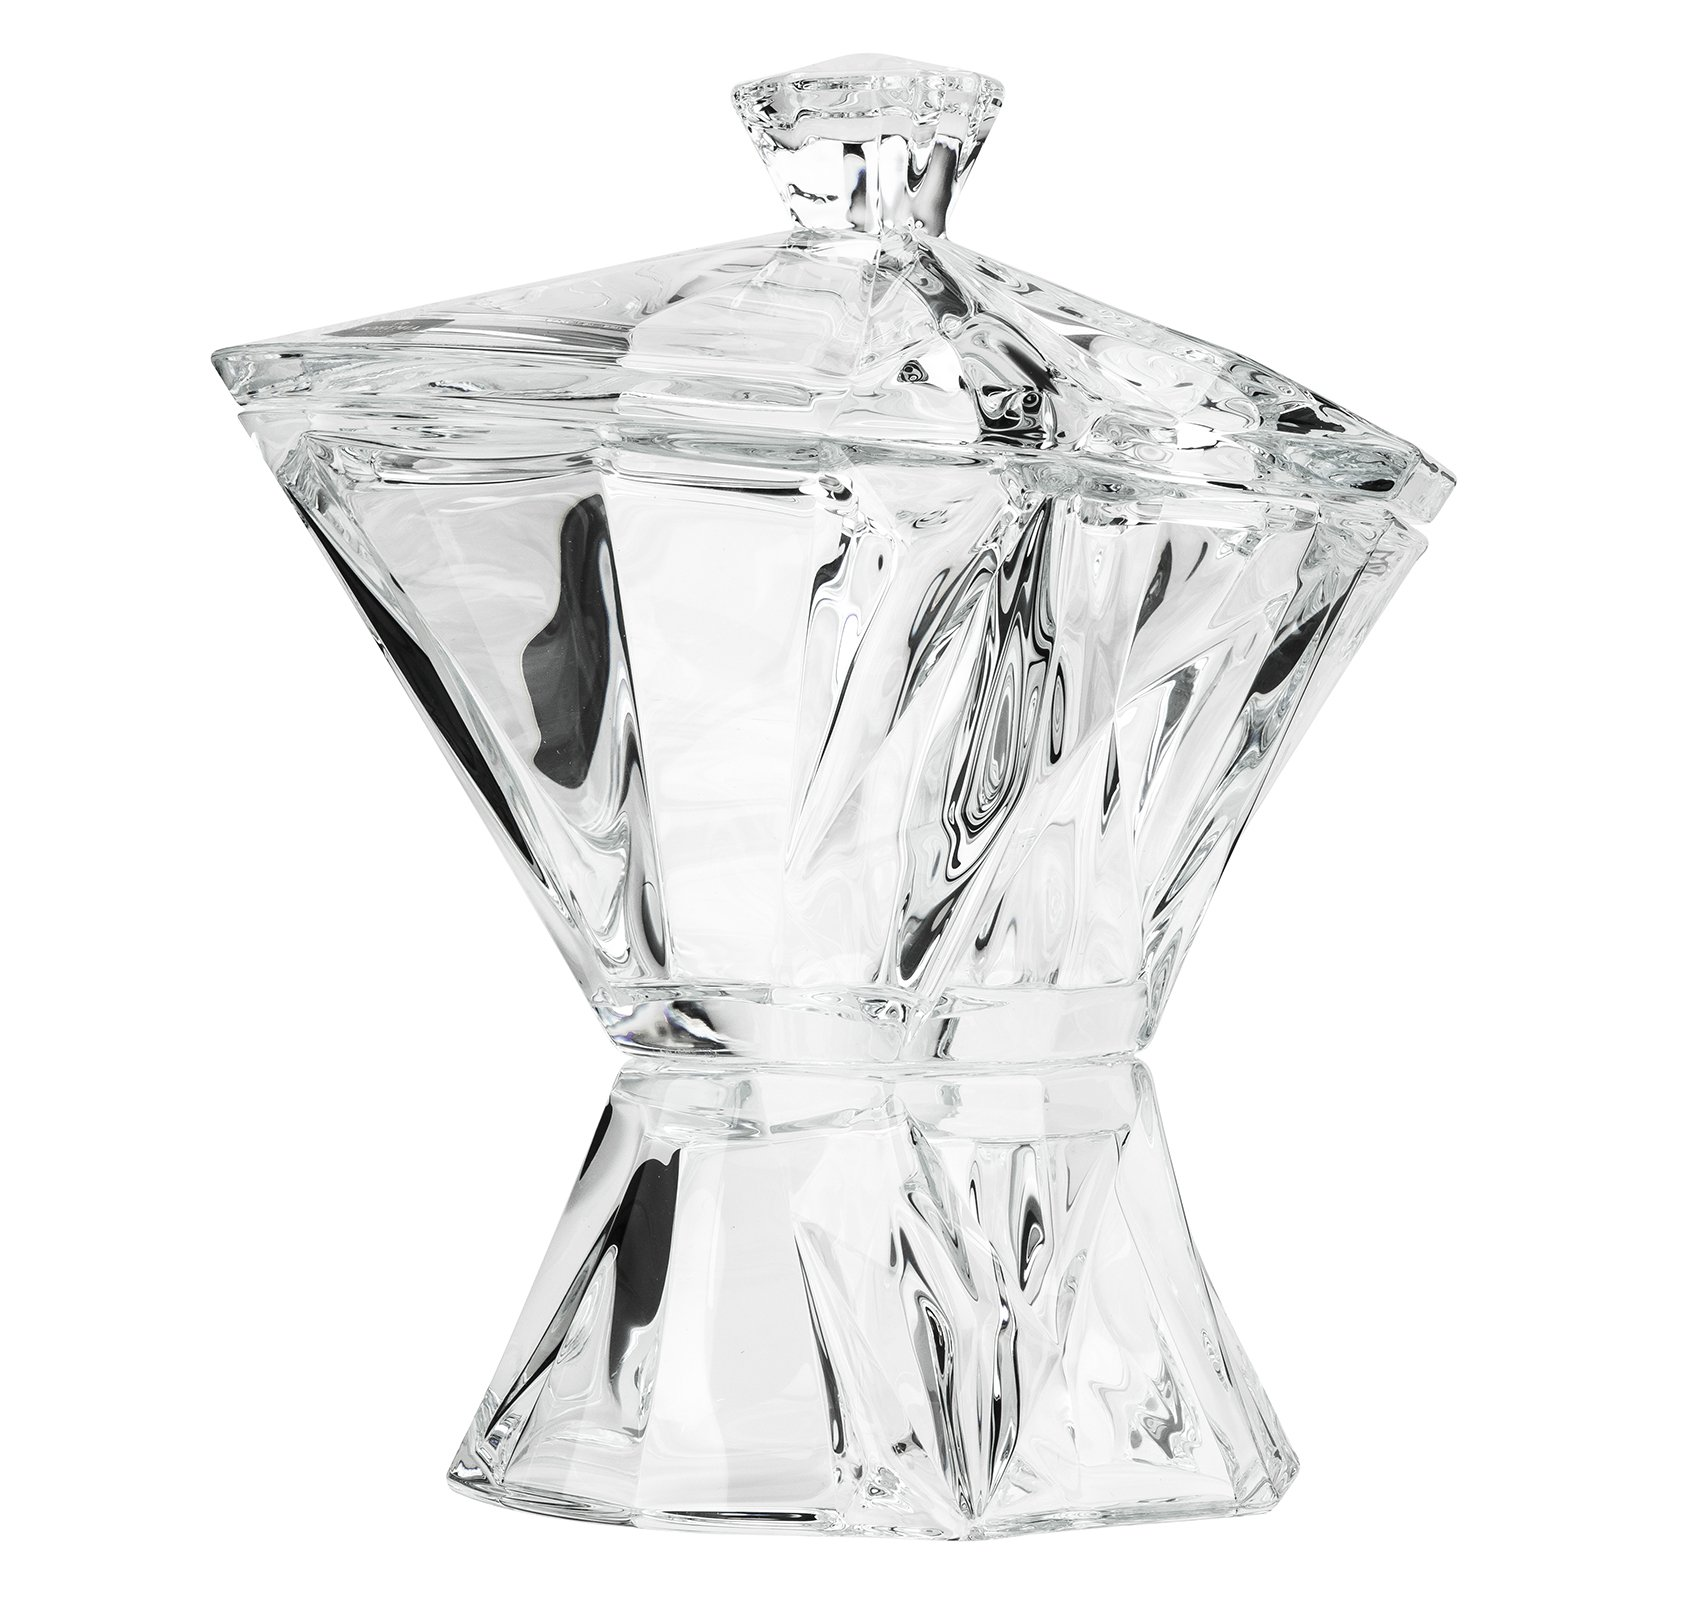 Aurum Crystal 11'' Large Angles Candy Box, Decorative Centerpiece Footed Bowl with Lid, Crystal Trinket Box on Stem, Wedding Gift